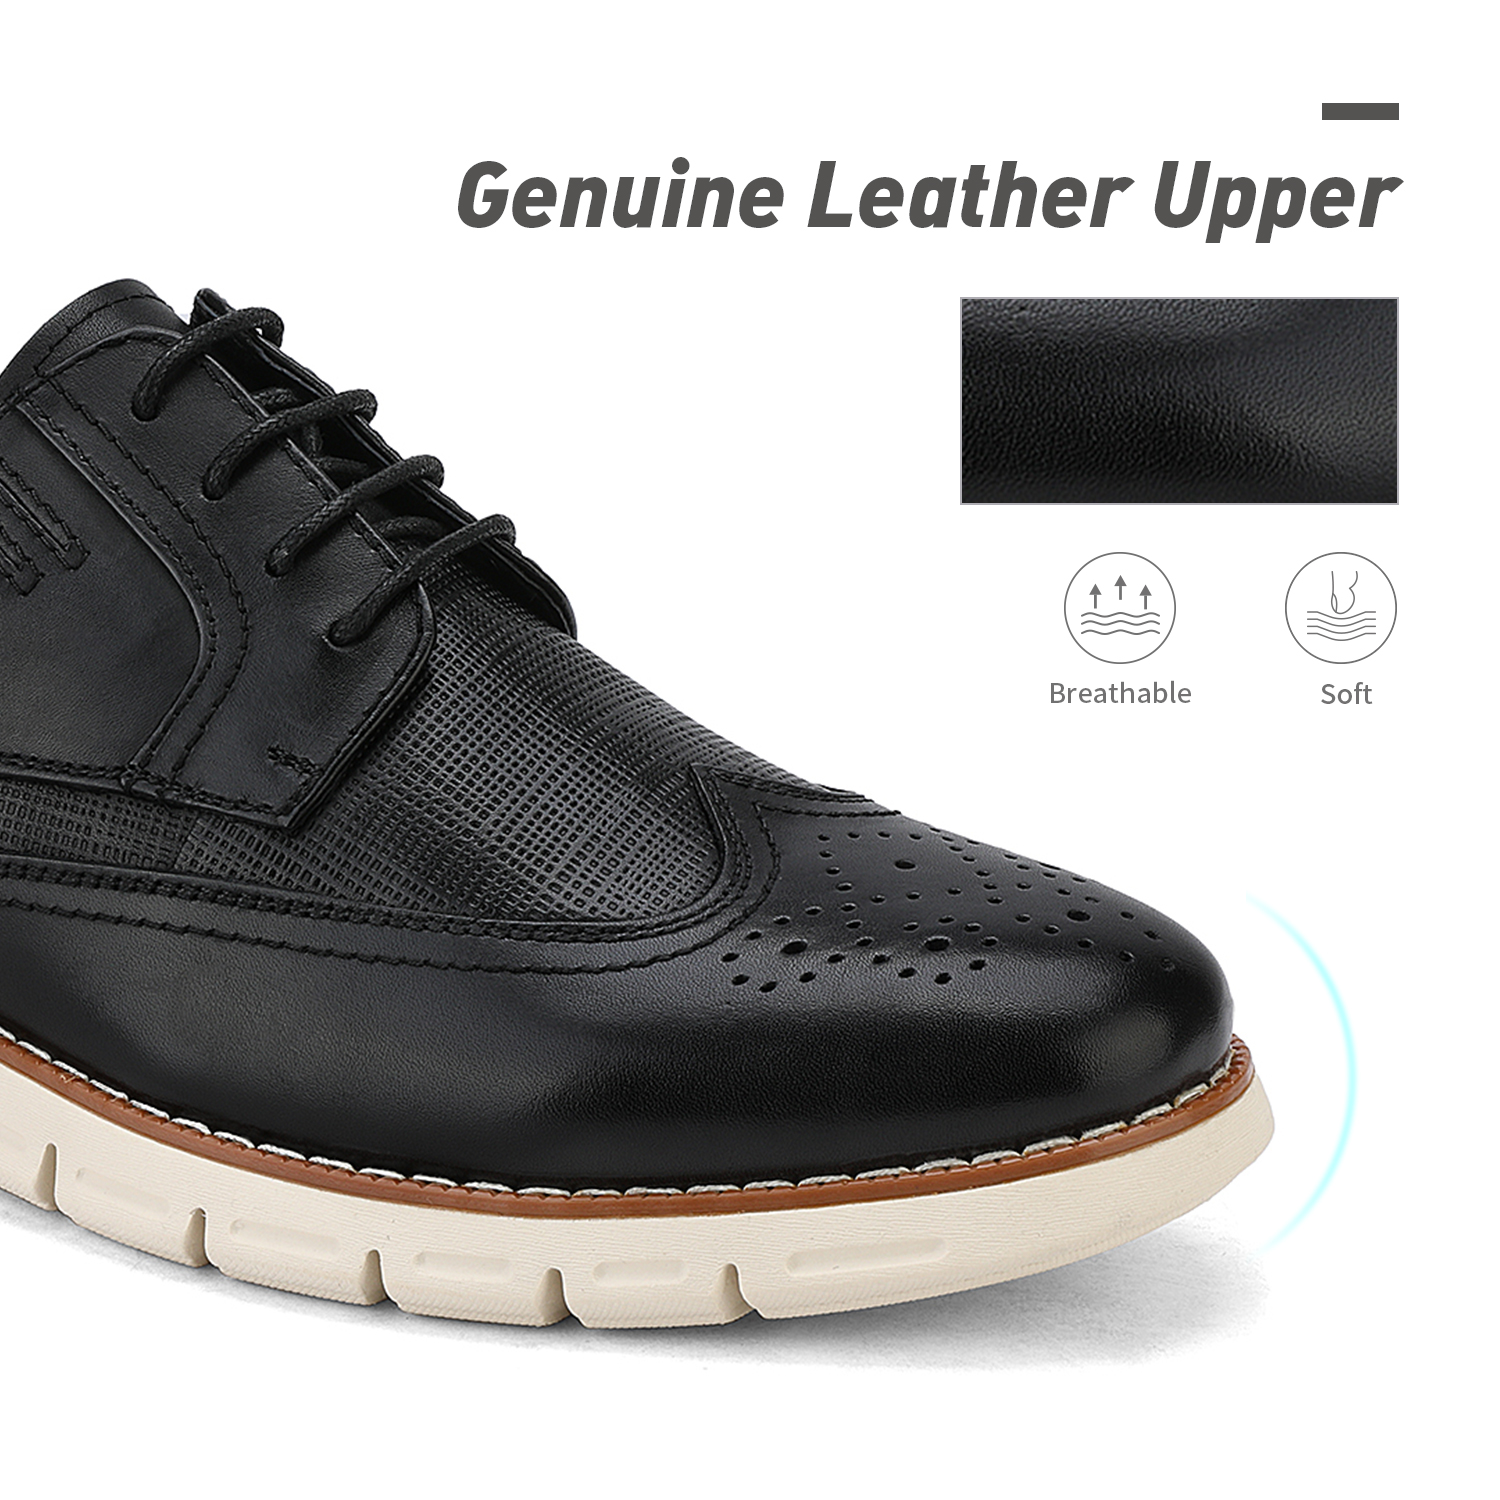 Men-s-Genuine-Leather-Casual-Formal-Sneakers-Lace-up-Business-Oxford-Dress-Shoes thumbnail 8